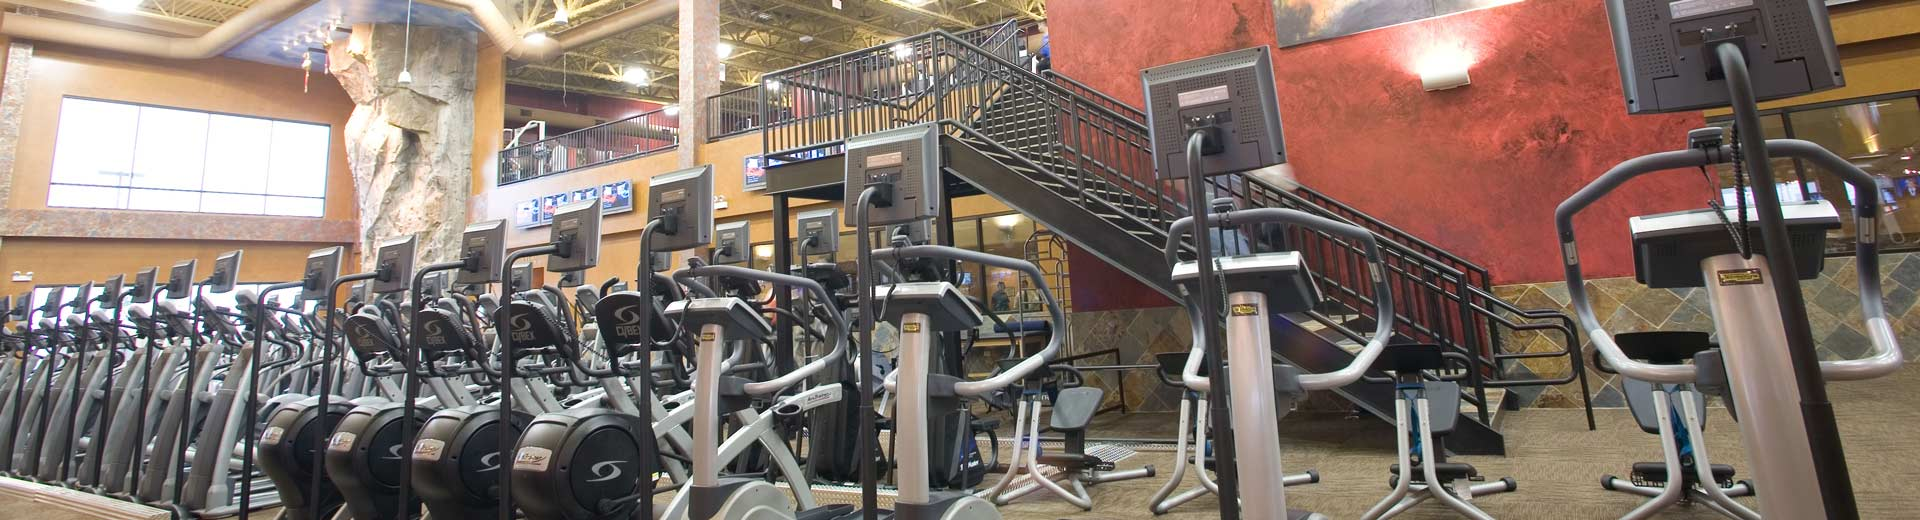 naperville, il gym amenities | xsport fitness